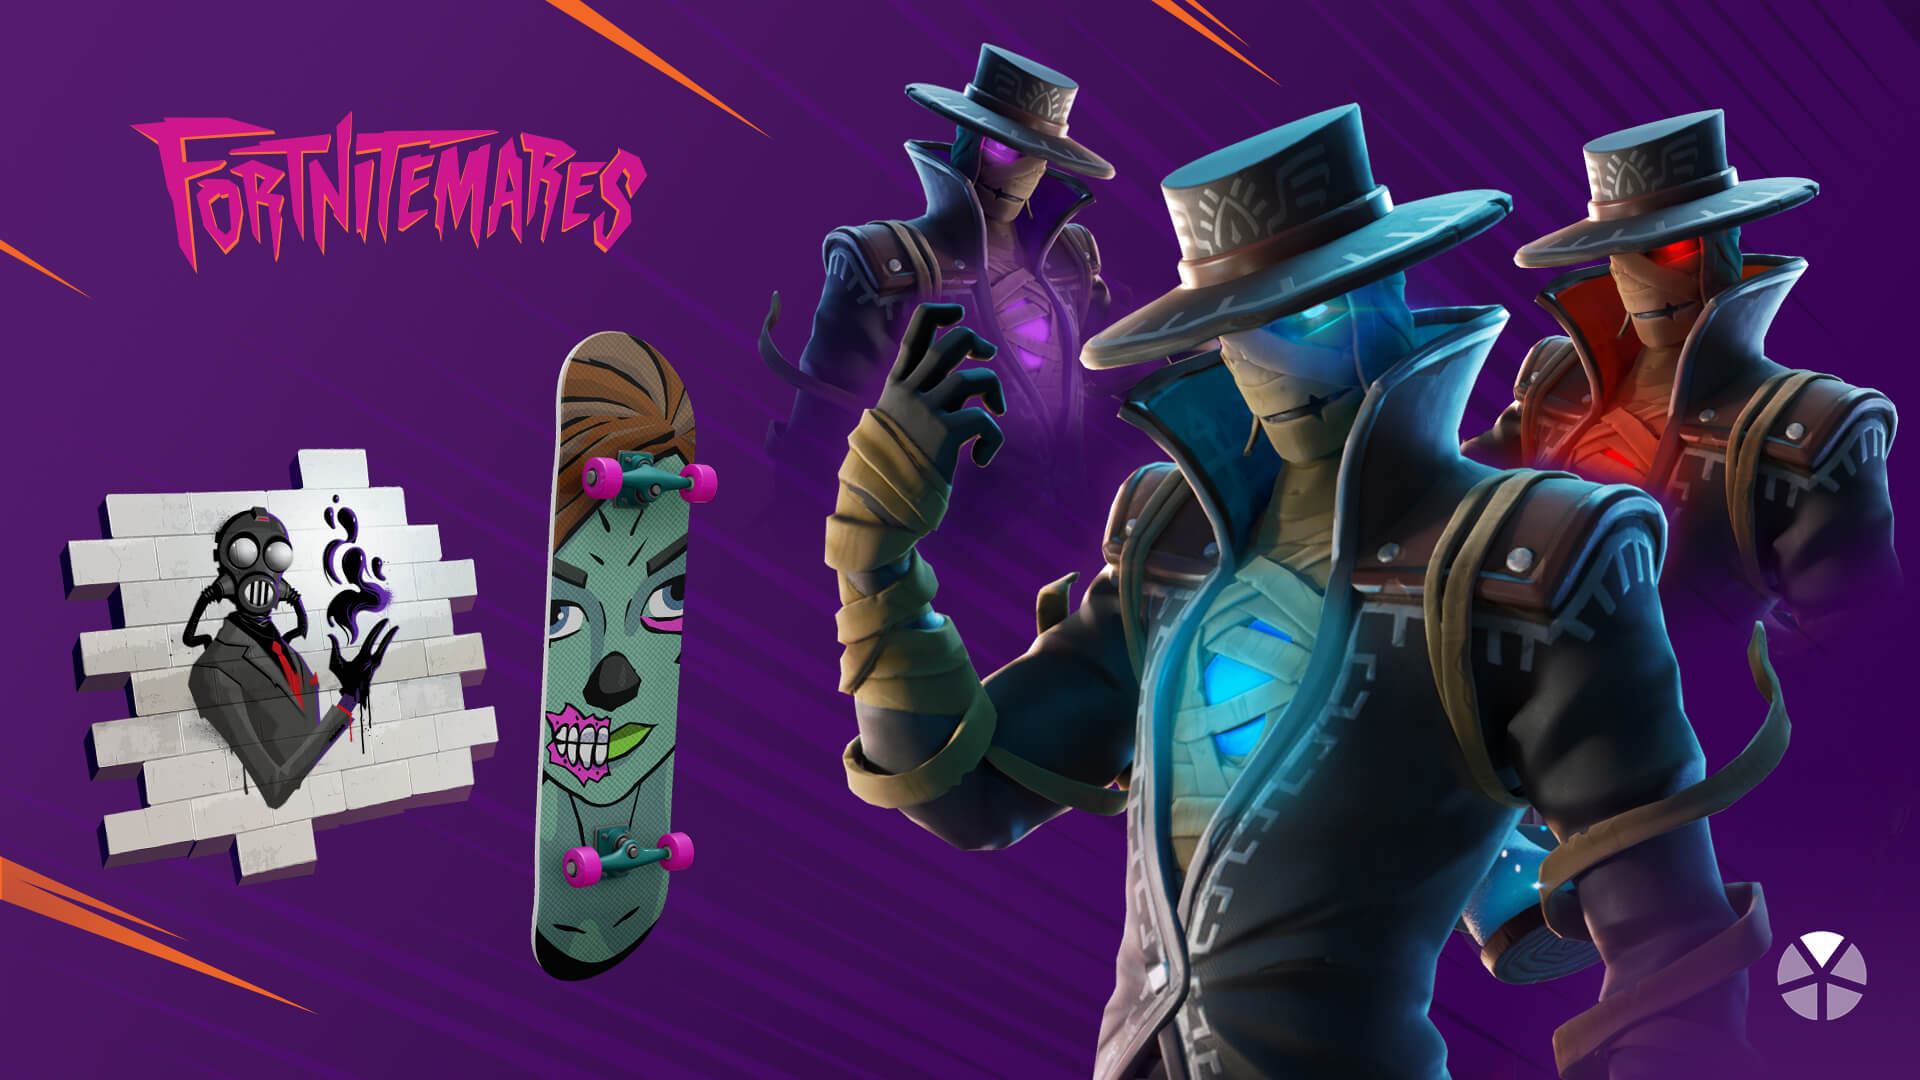 Fortnitemares 2019 Explained the Details of Recent Fortnite Downtime